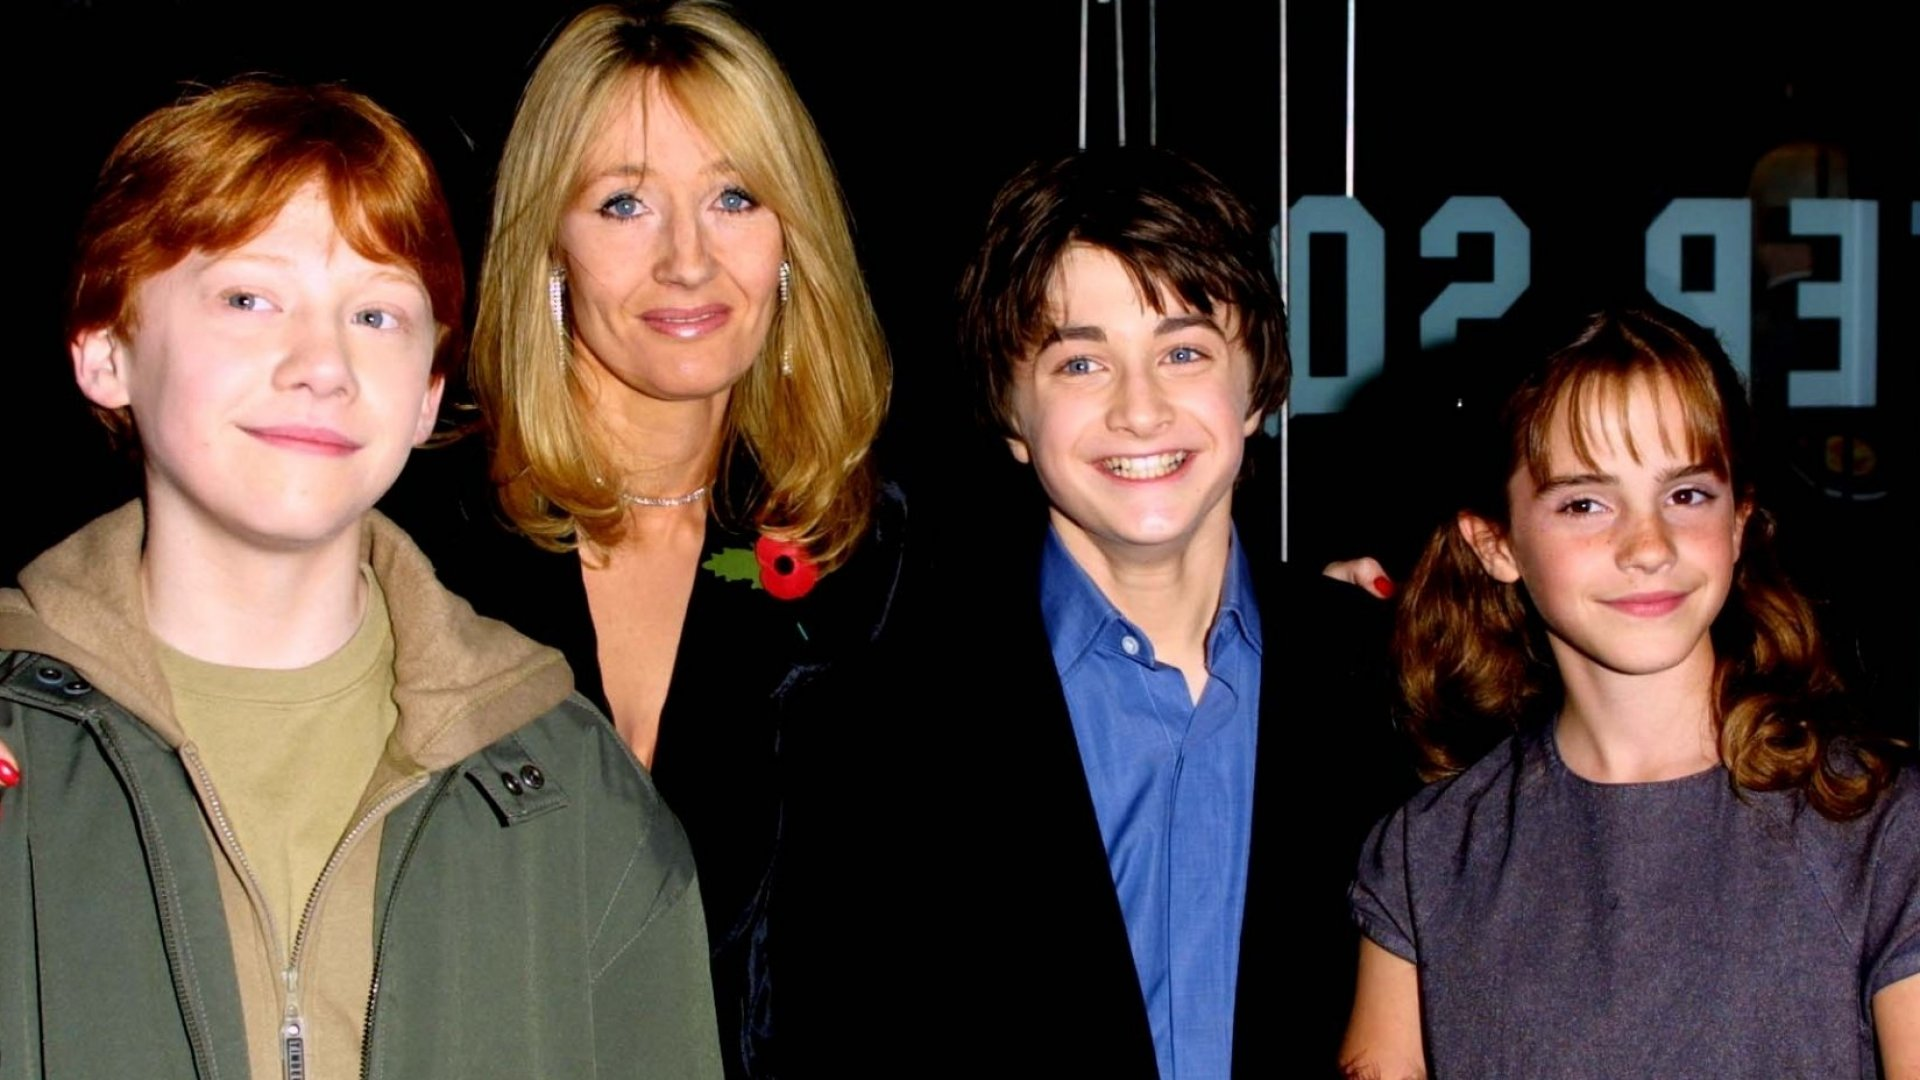 """Rupert Grint, J.K. Rowling, Daniel Radcliffe, and Emma Watson at the premiere of the movie """"Harry Potter and the Sorceror's Stone"""" in 2001."""